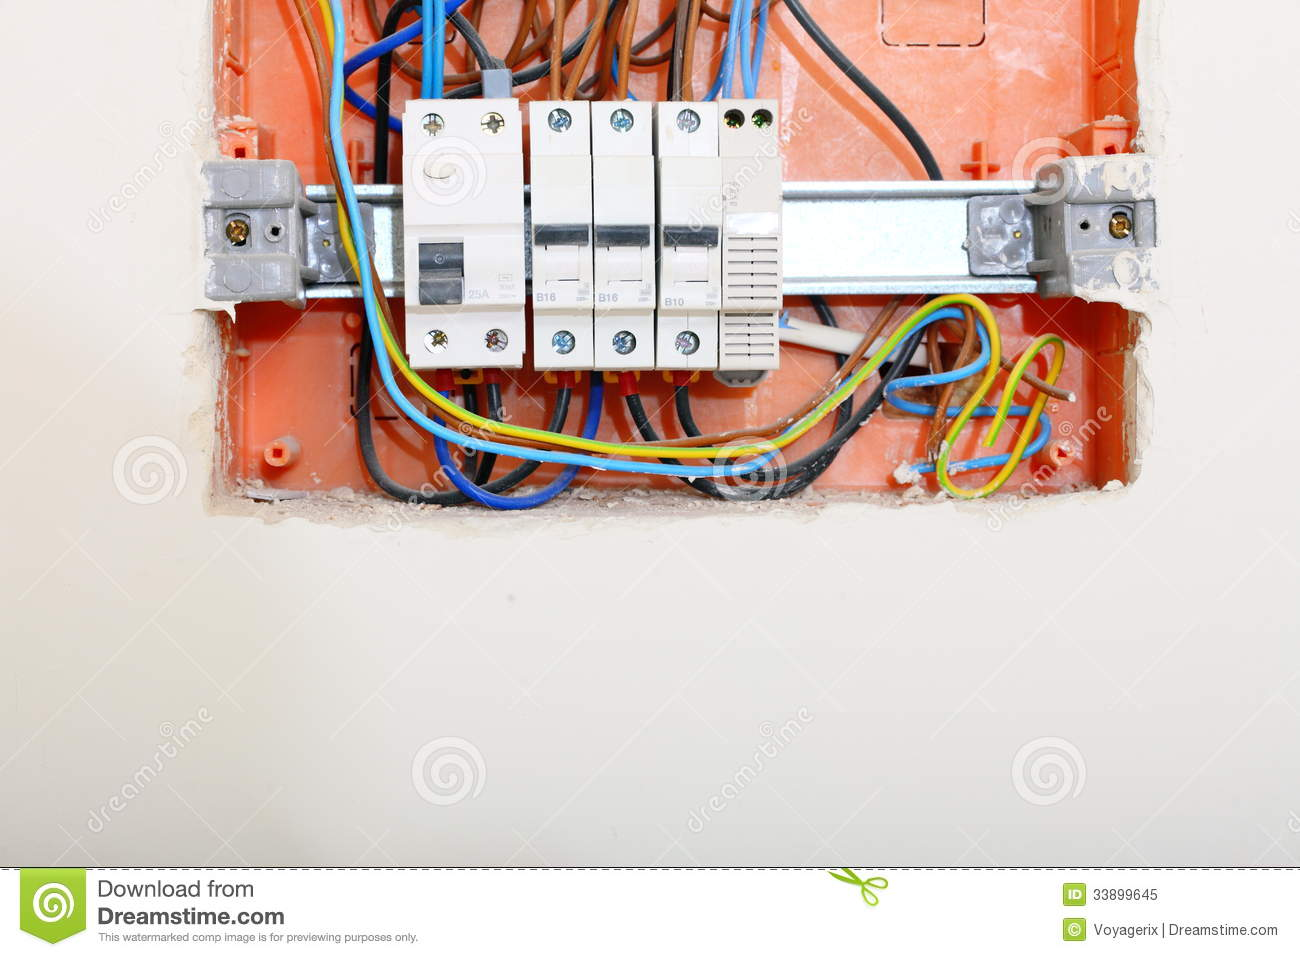 electrical panel box with fuses and contactors stock image. Black Bedroom Furniture Sets. Home Design Ideas